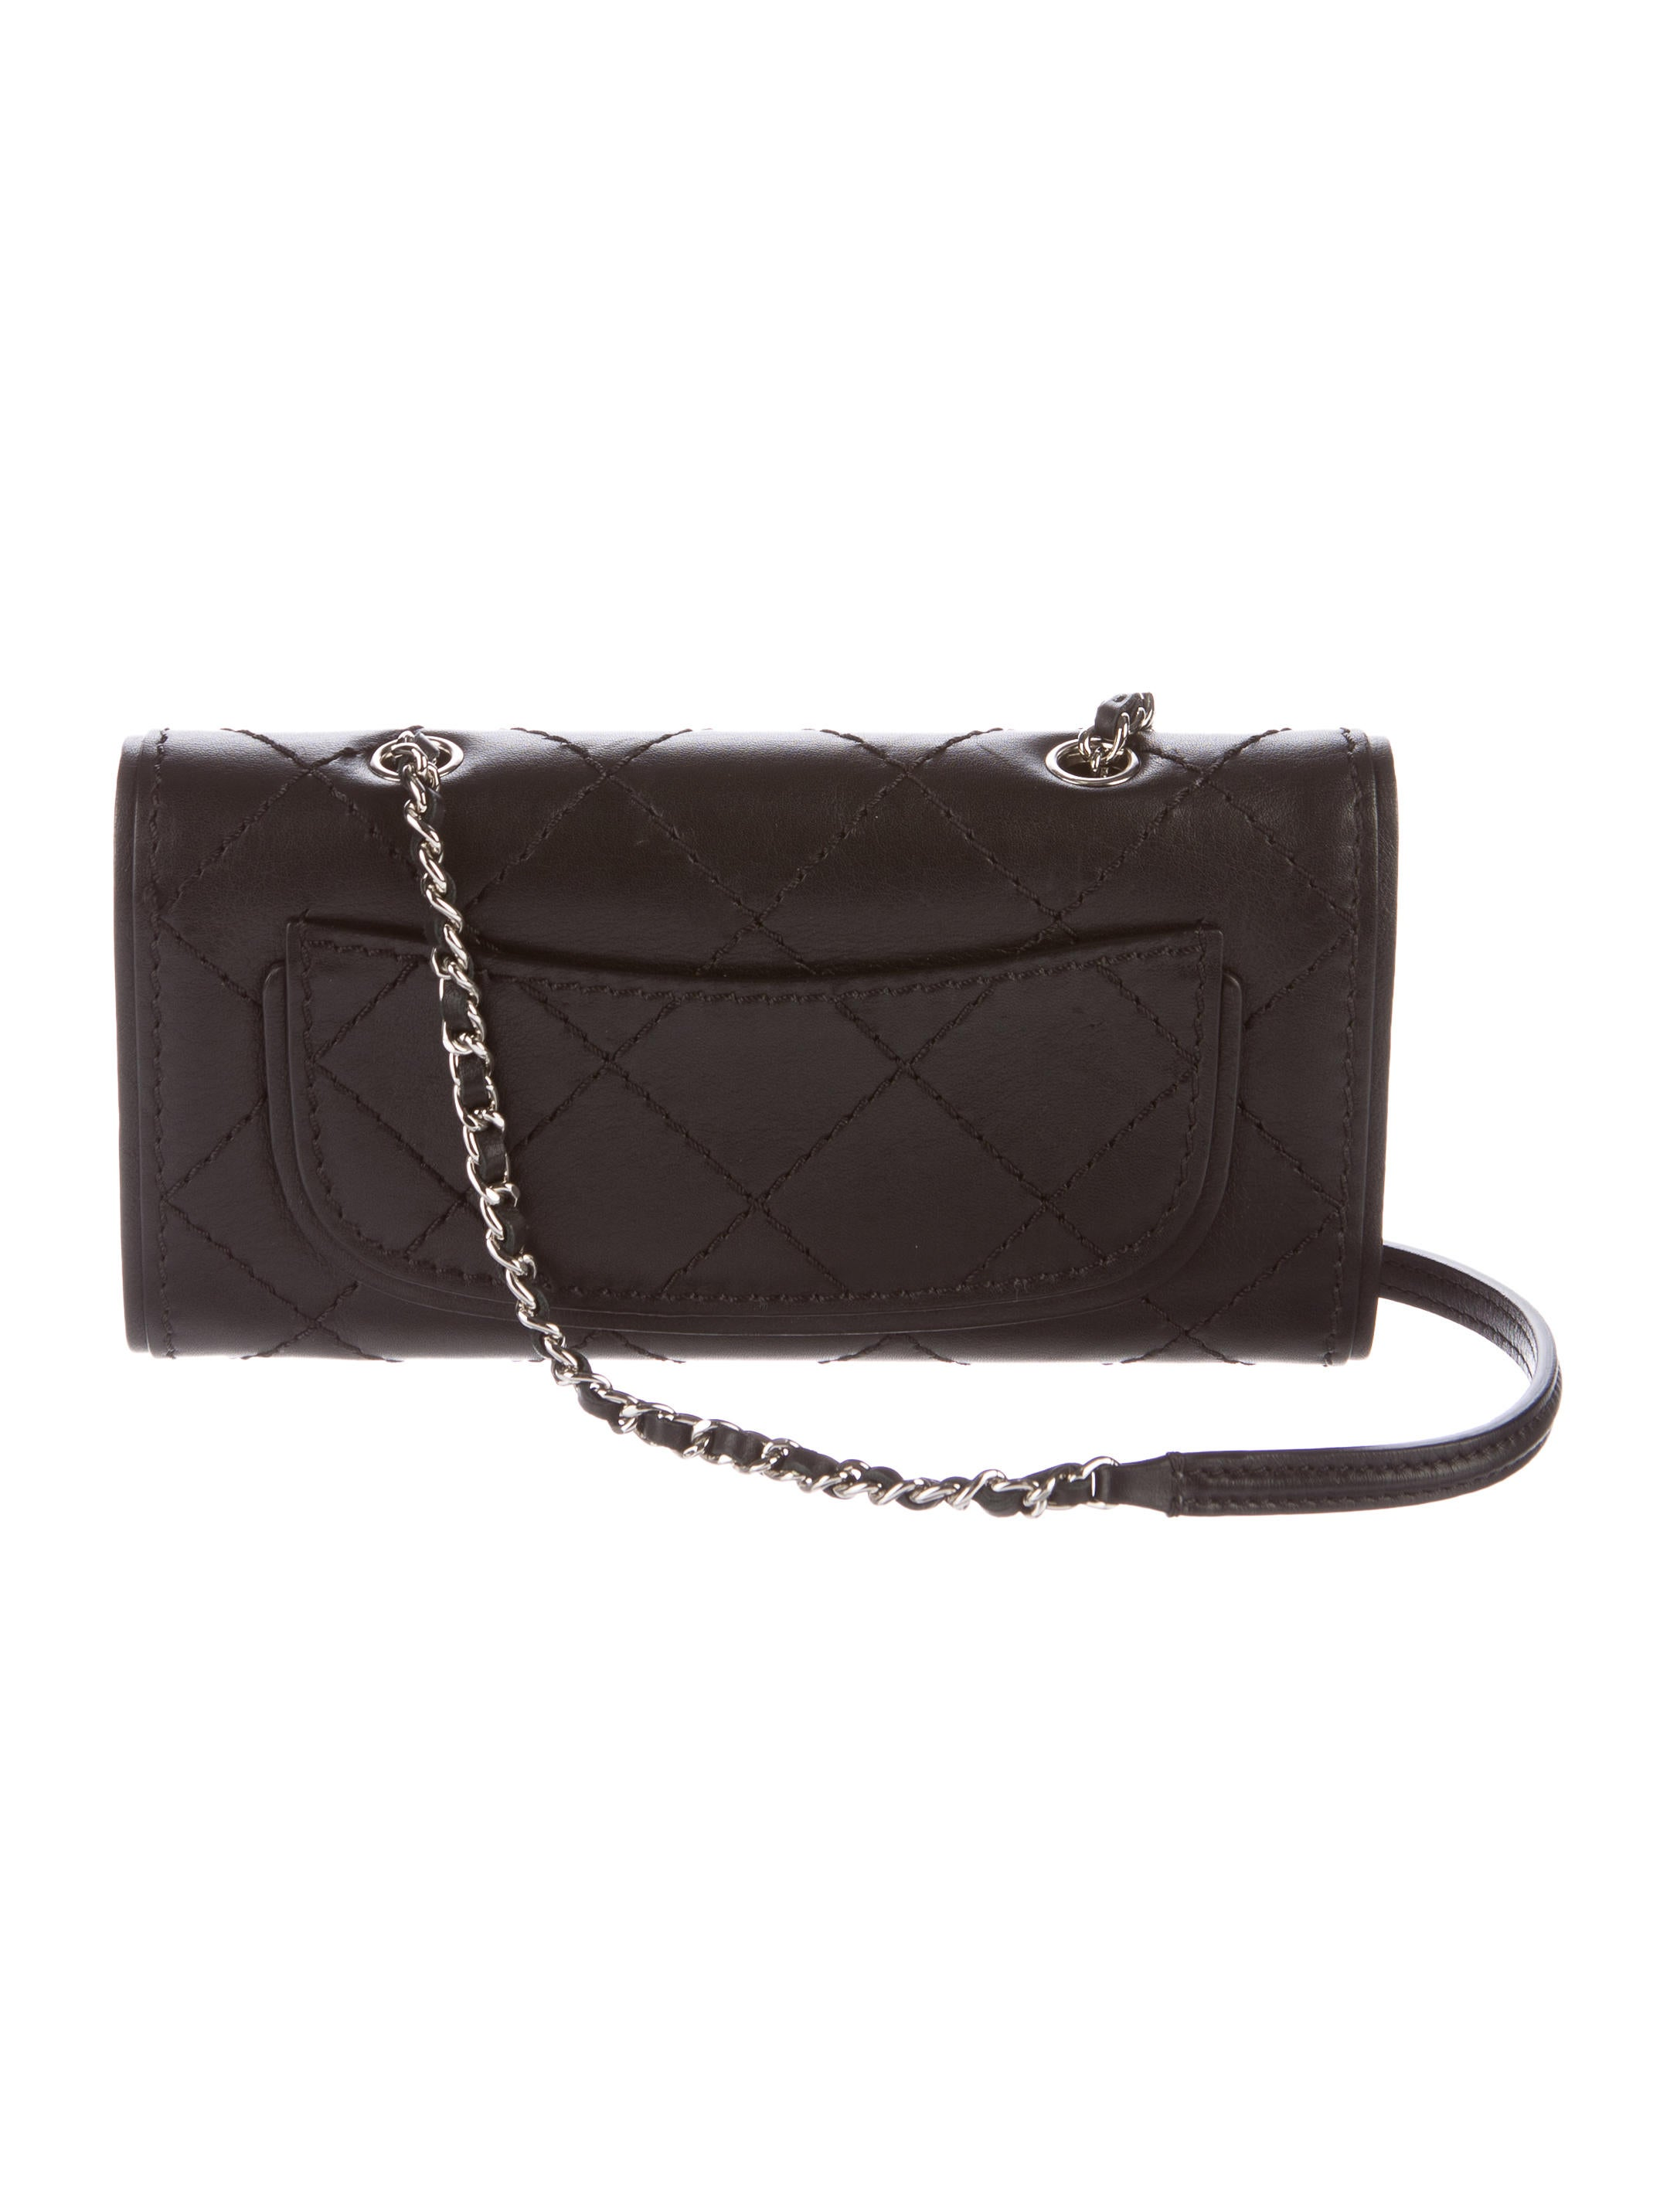 0a5b616f5c98e0 Chanel Wallet On Chain Straps | Stanford Center for Opportunity ...